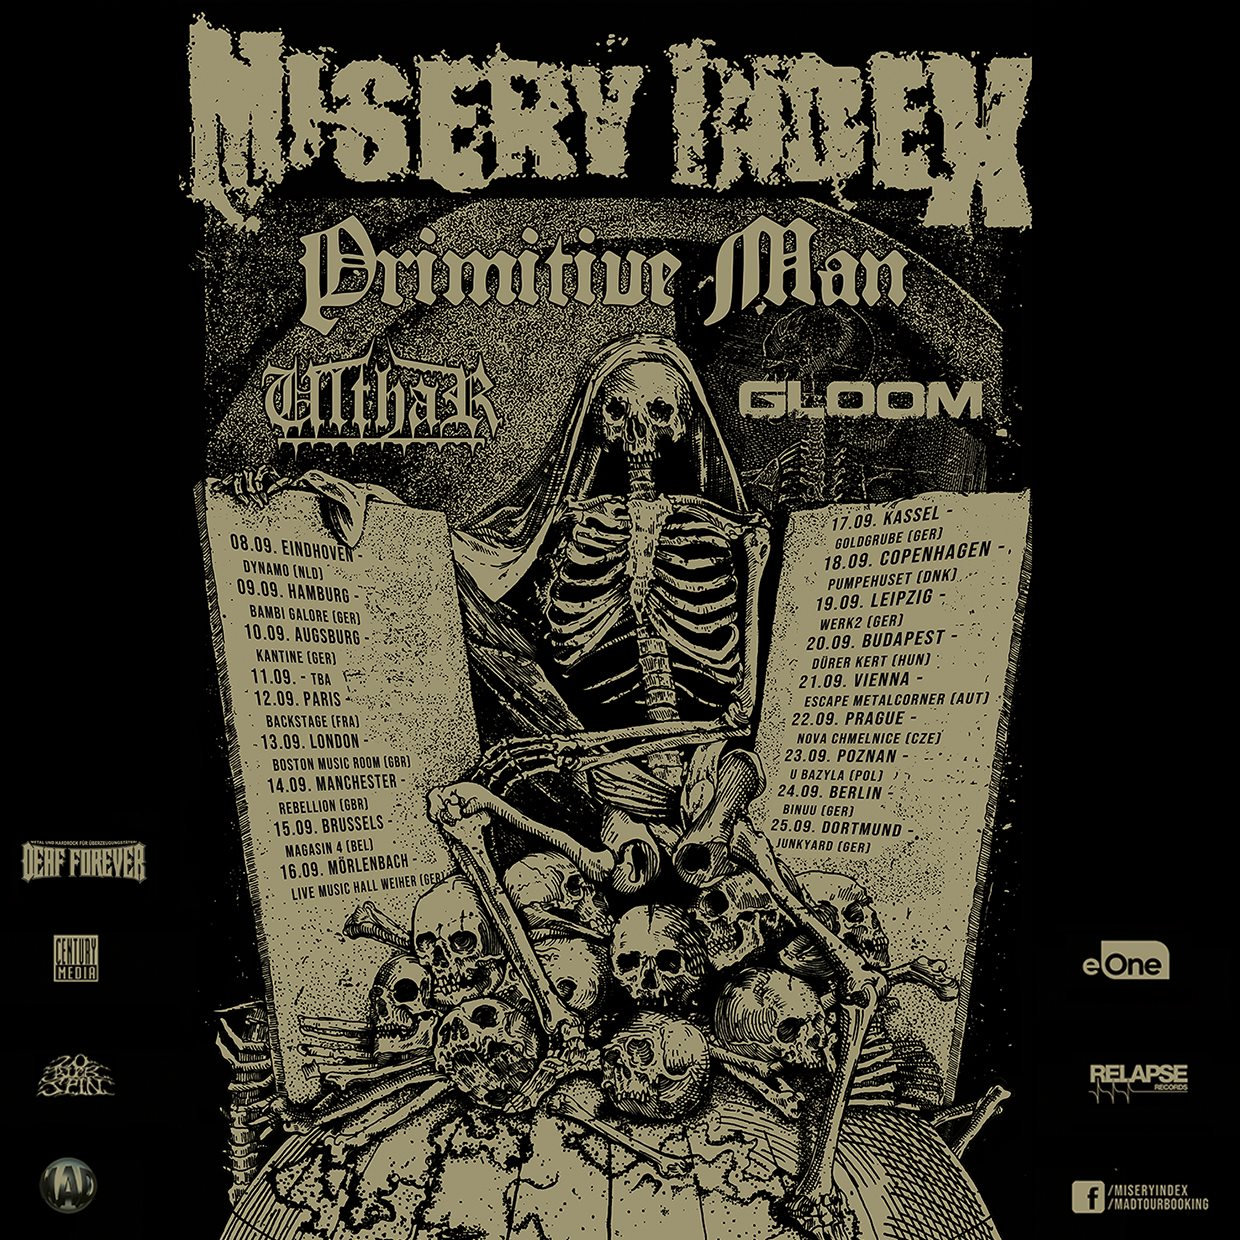 Misery Index, Primitive Man, Ulthar, Gloom